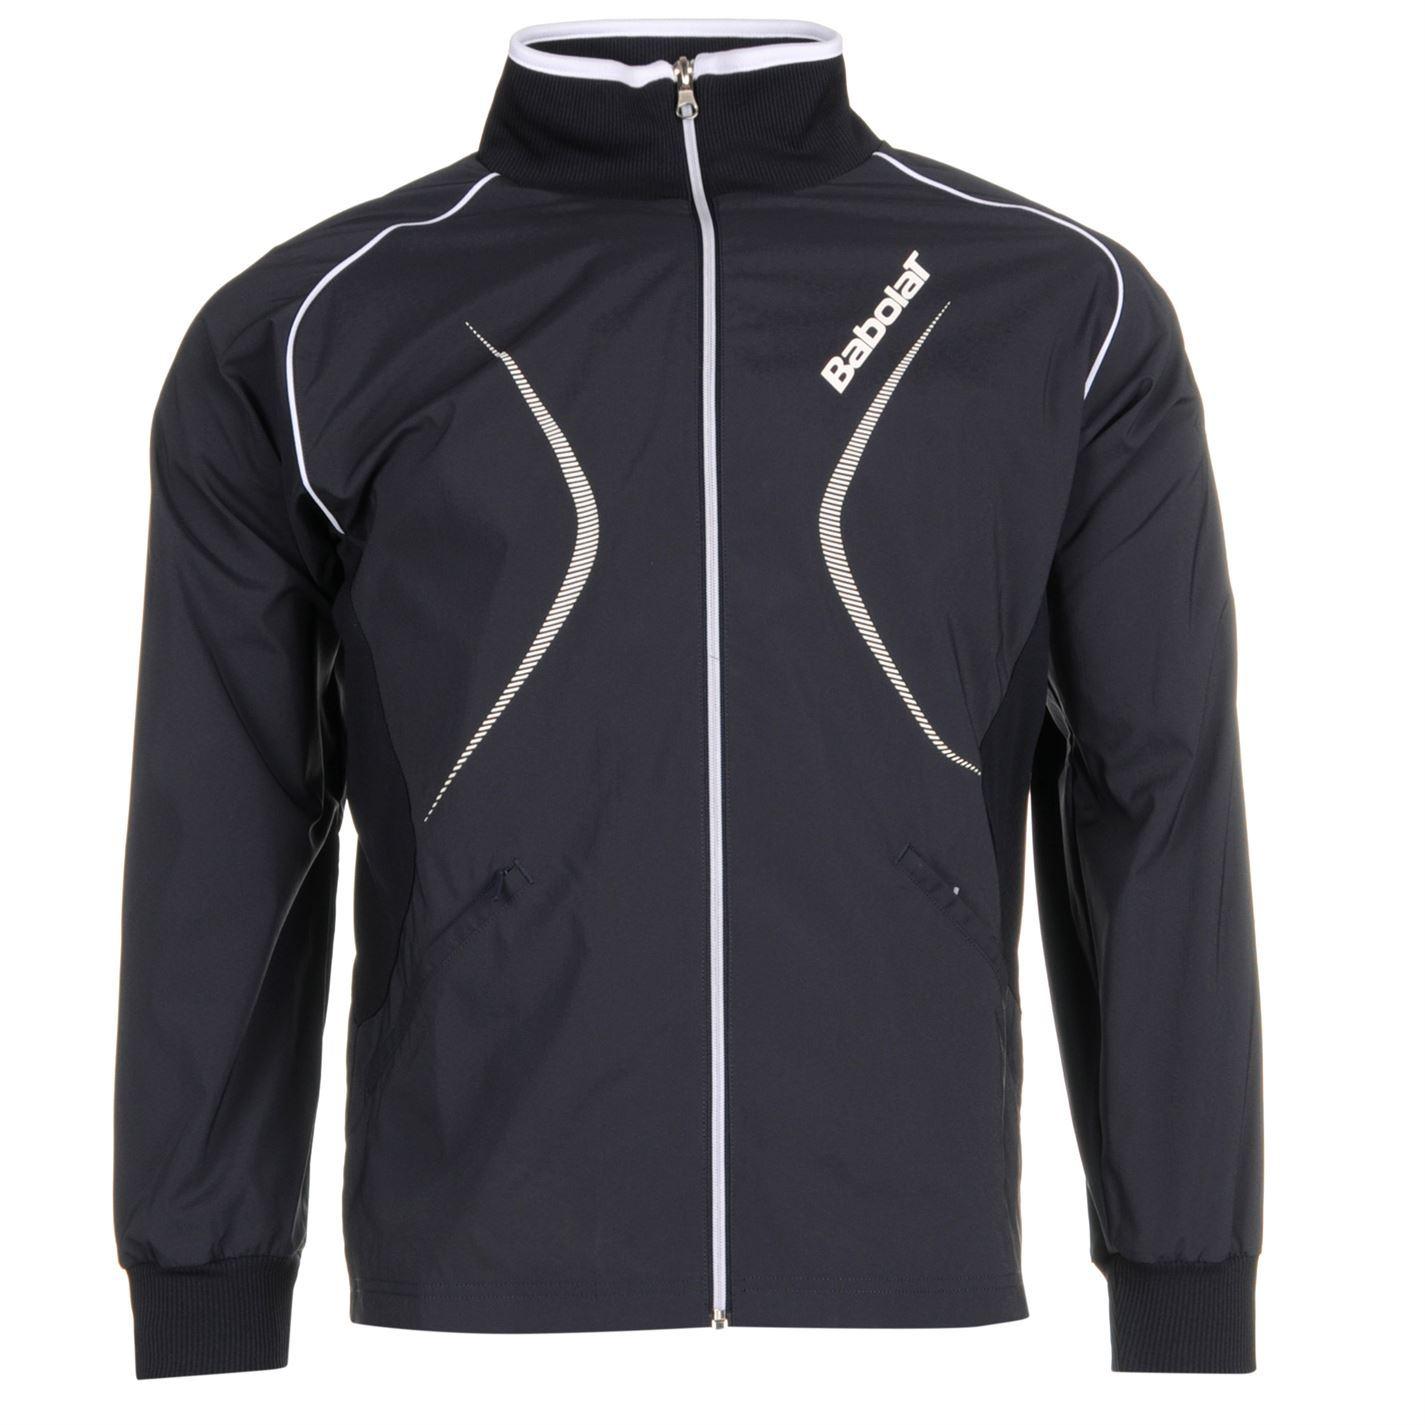 Babolat mens club jacket long sleeve full zip lightweight for Lightweight breathable long sleeve shirts